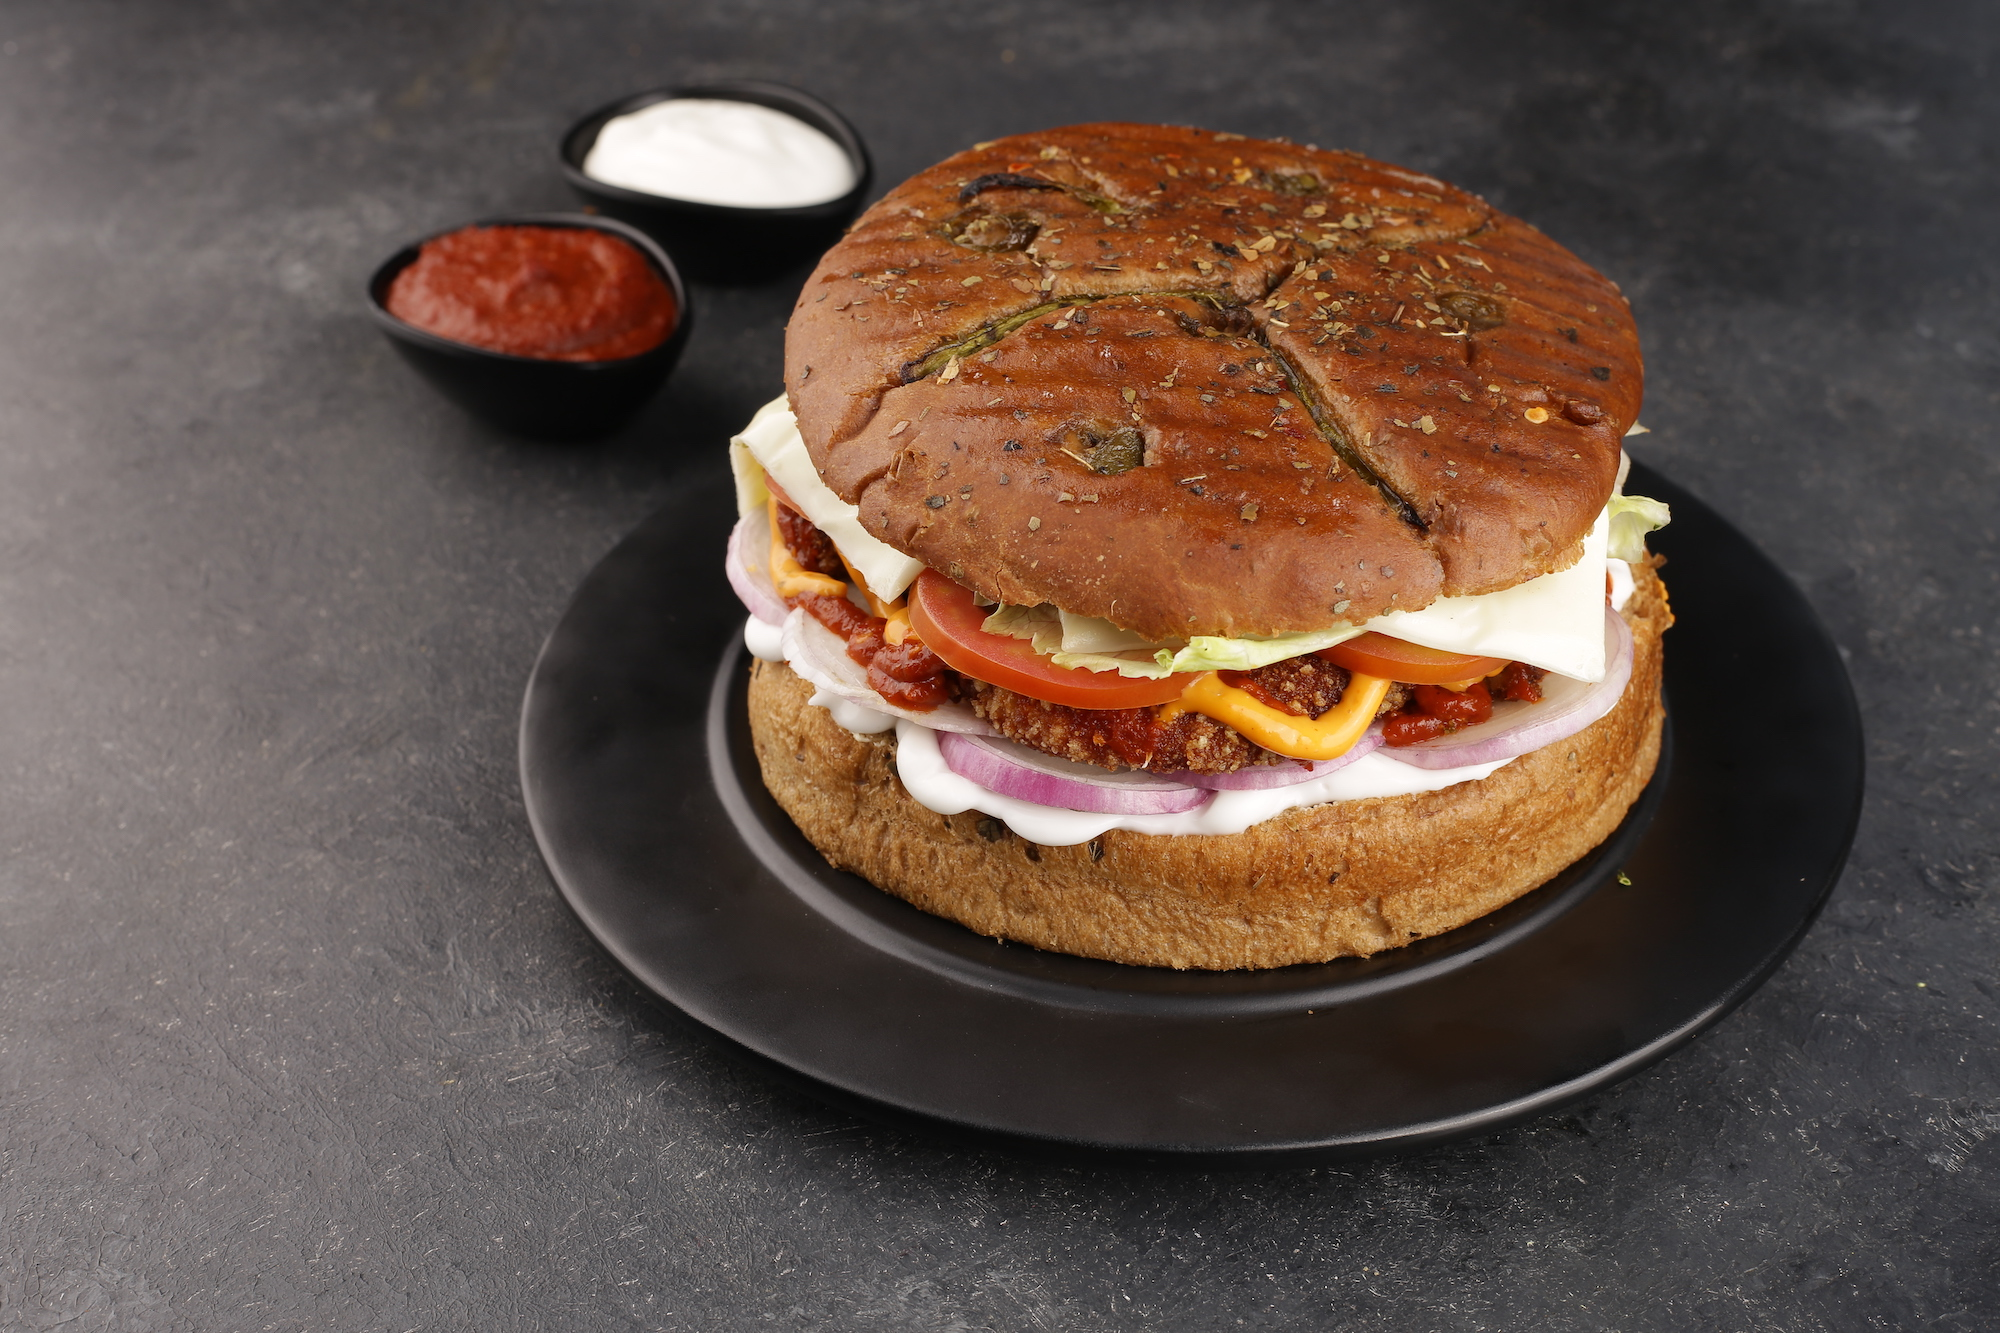 Indias First Multigrain Burger Chain in Ahmedabad is looking to give out franchise